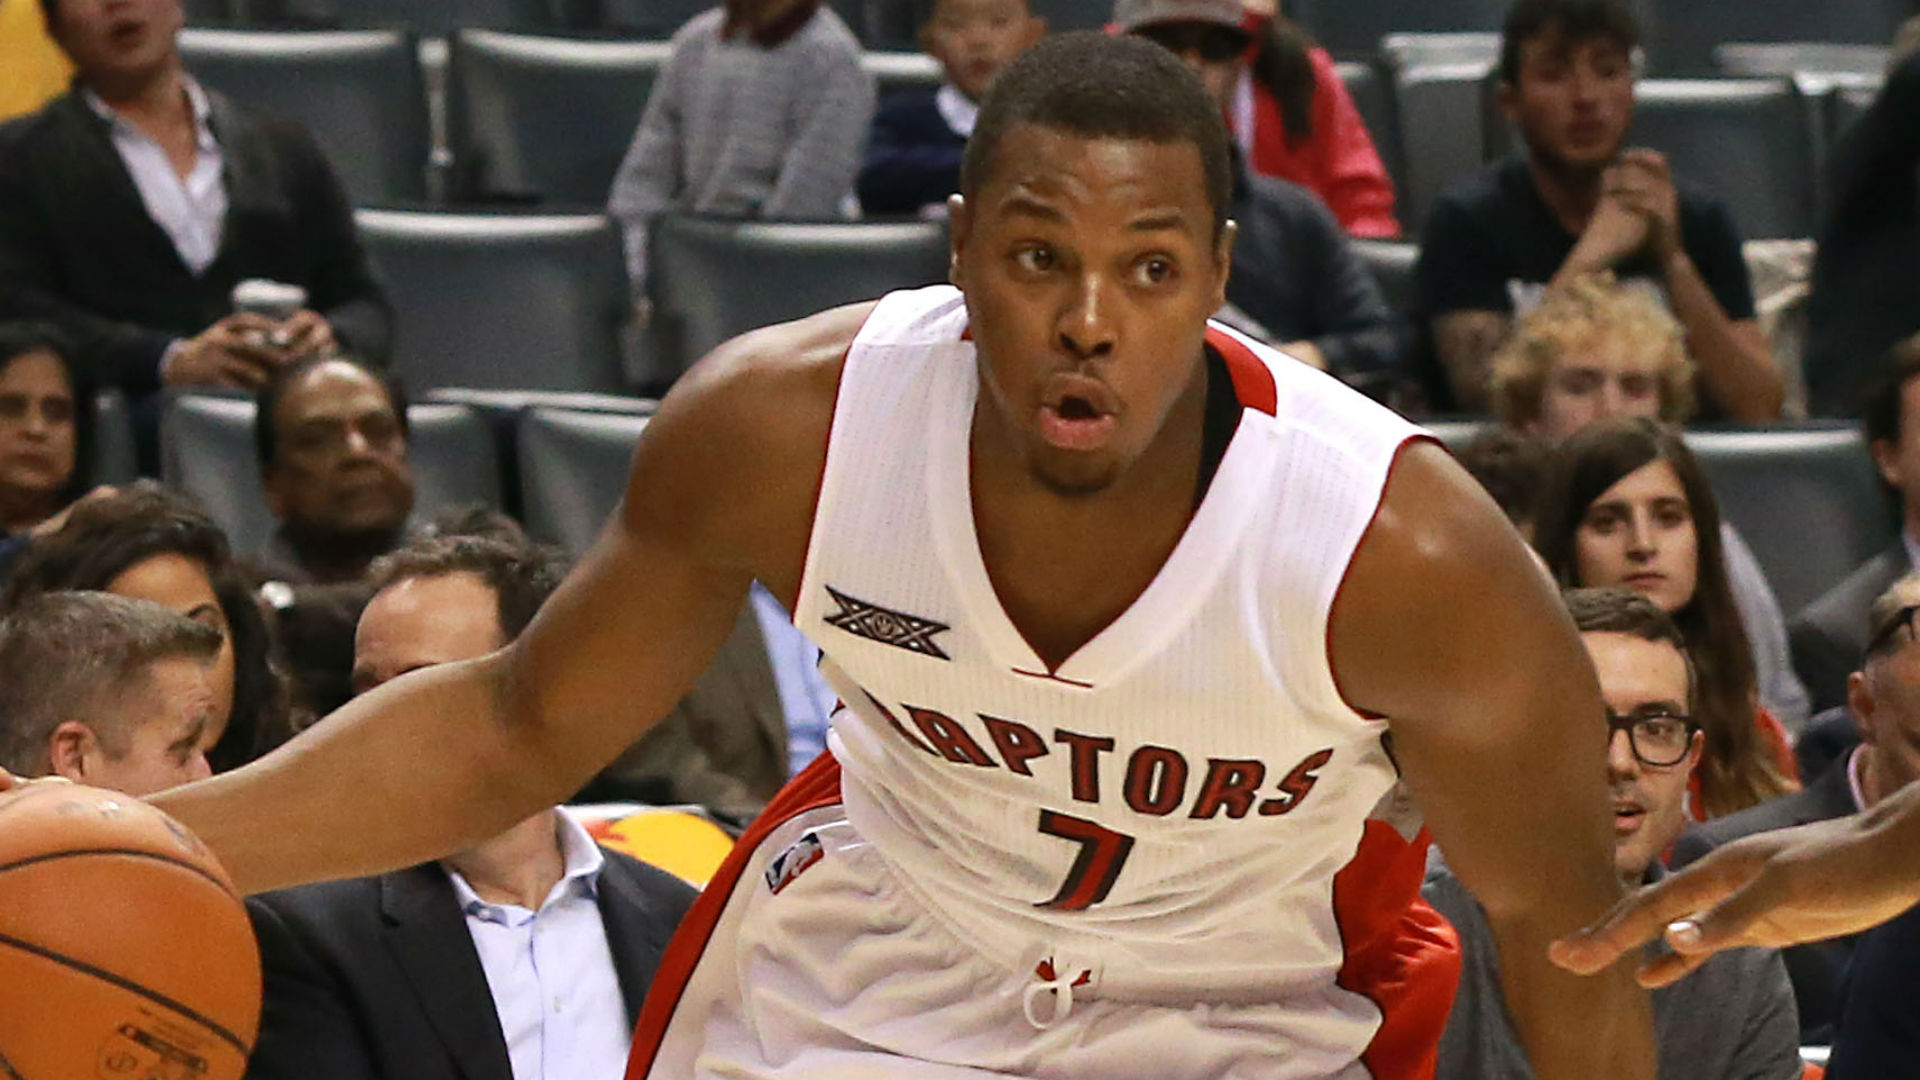 AccuScore NBA pick - Streaking Raptors welcome Suns north of the border